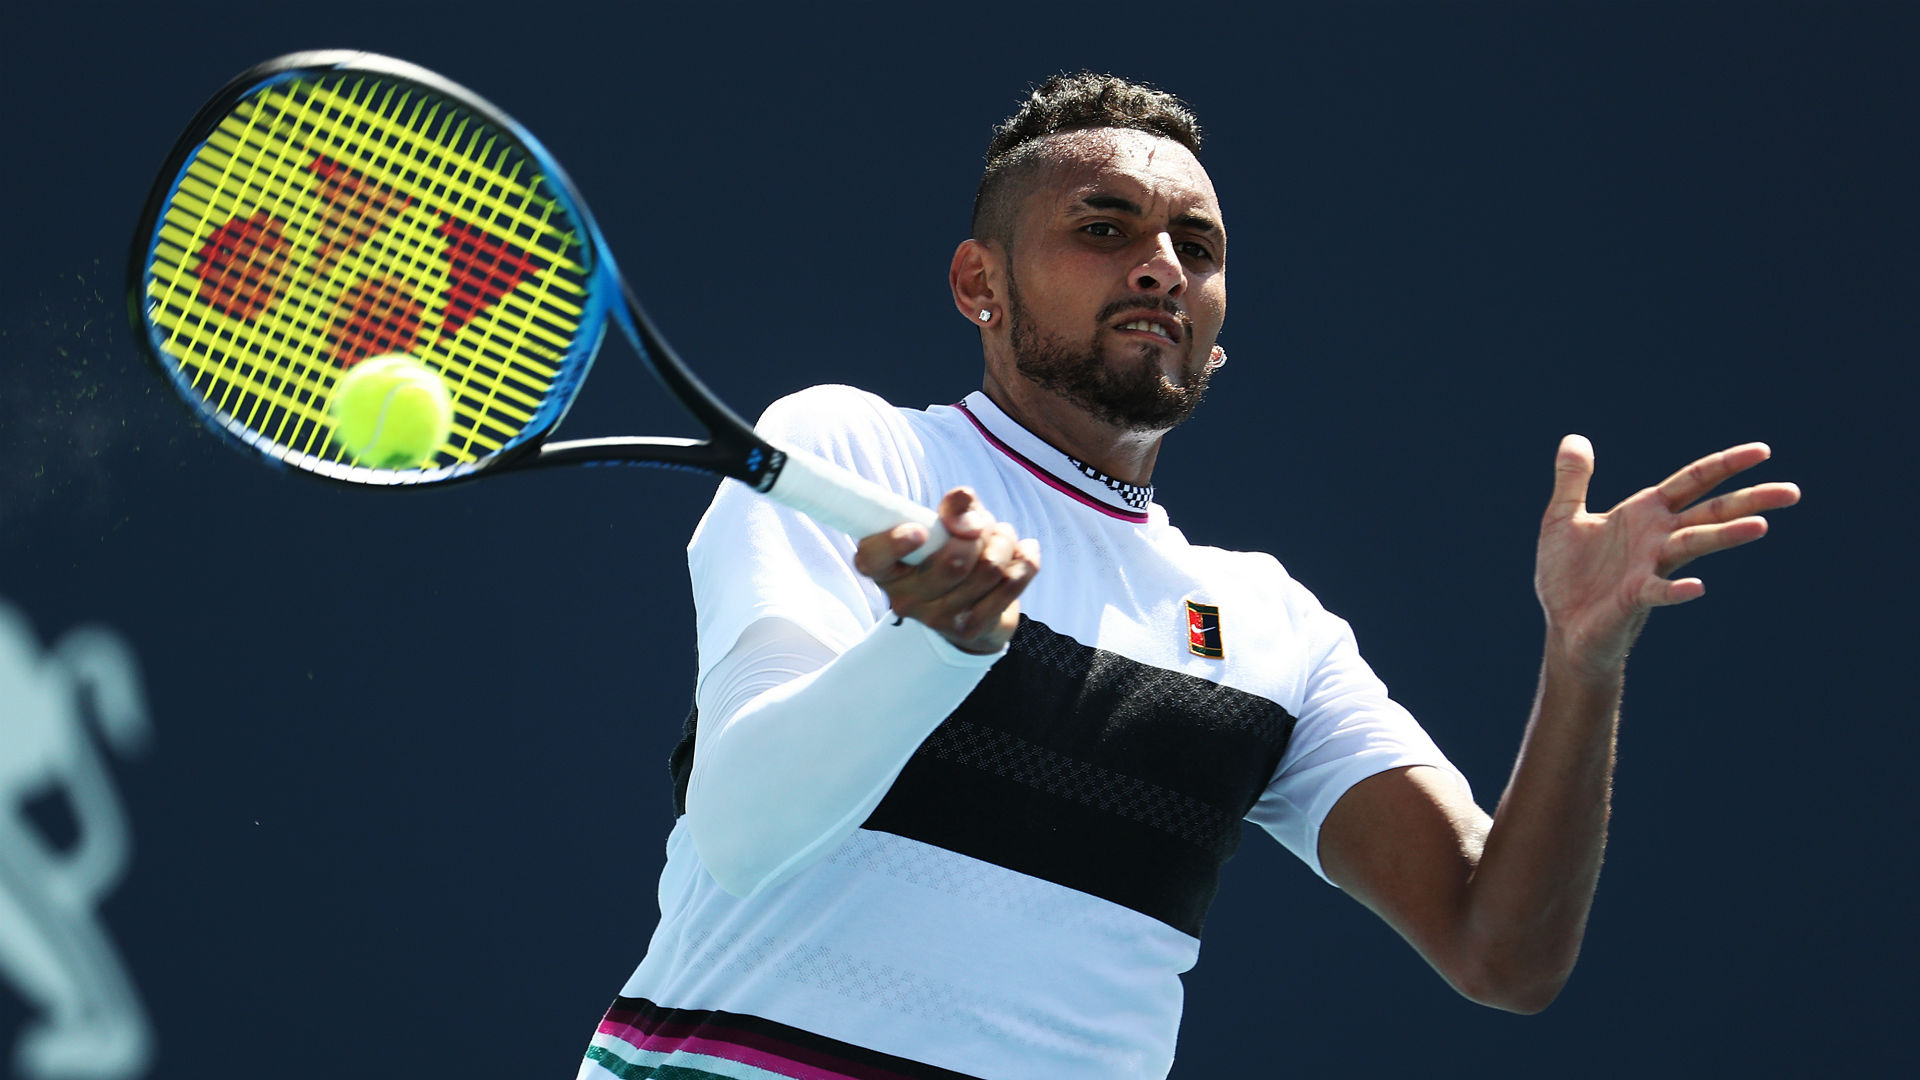 Nick Kyrgios says he cannot stand Novak Djokovic and described Rafael Nadal as his 'polar opposite'.